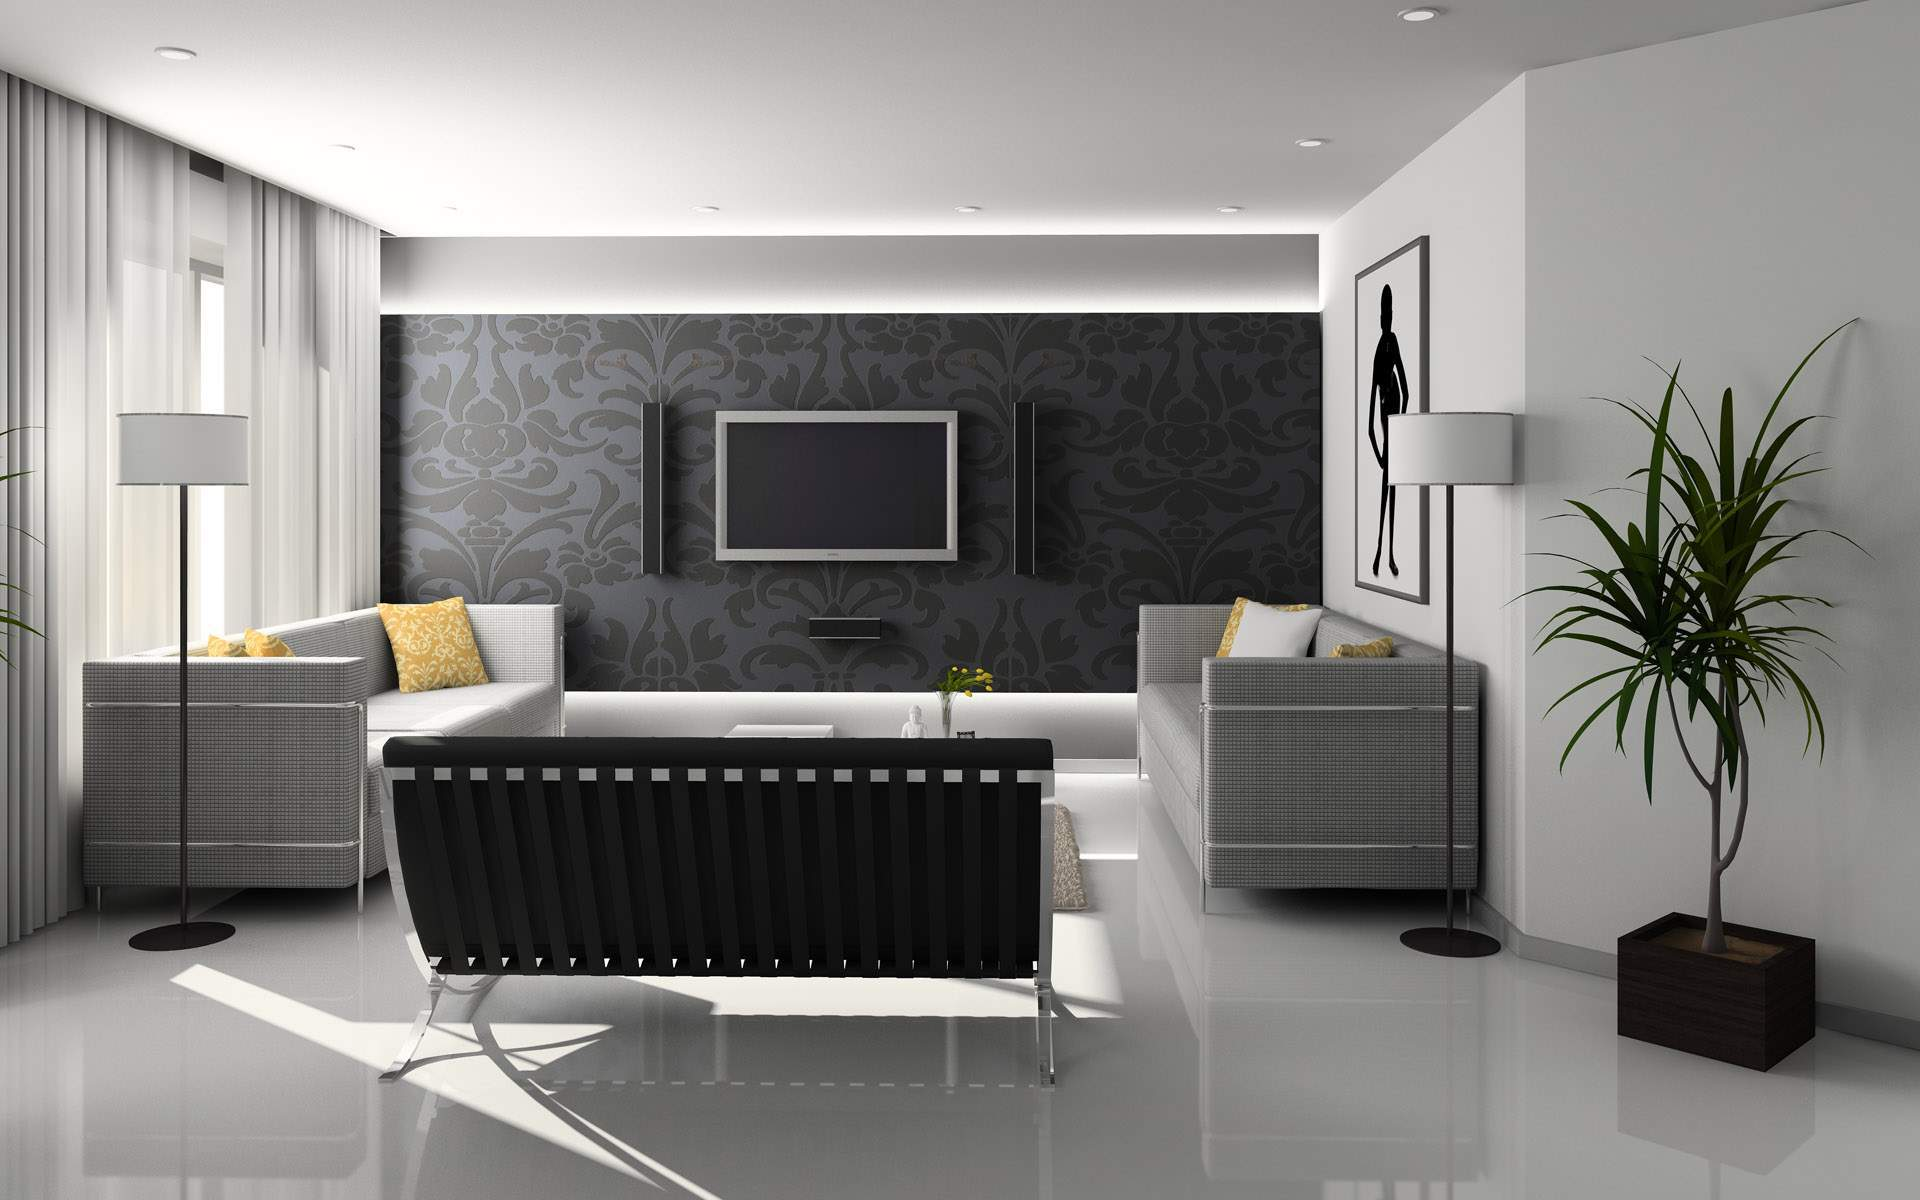 Featured Image of Stylish And Futuristic Living Room Design Concept